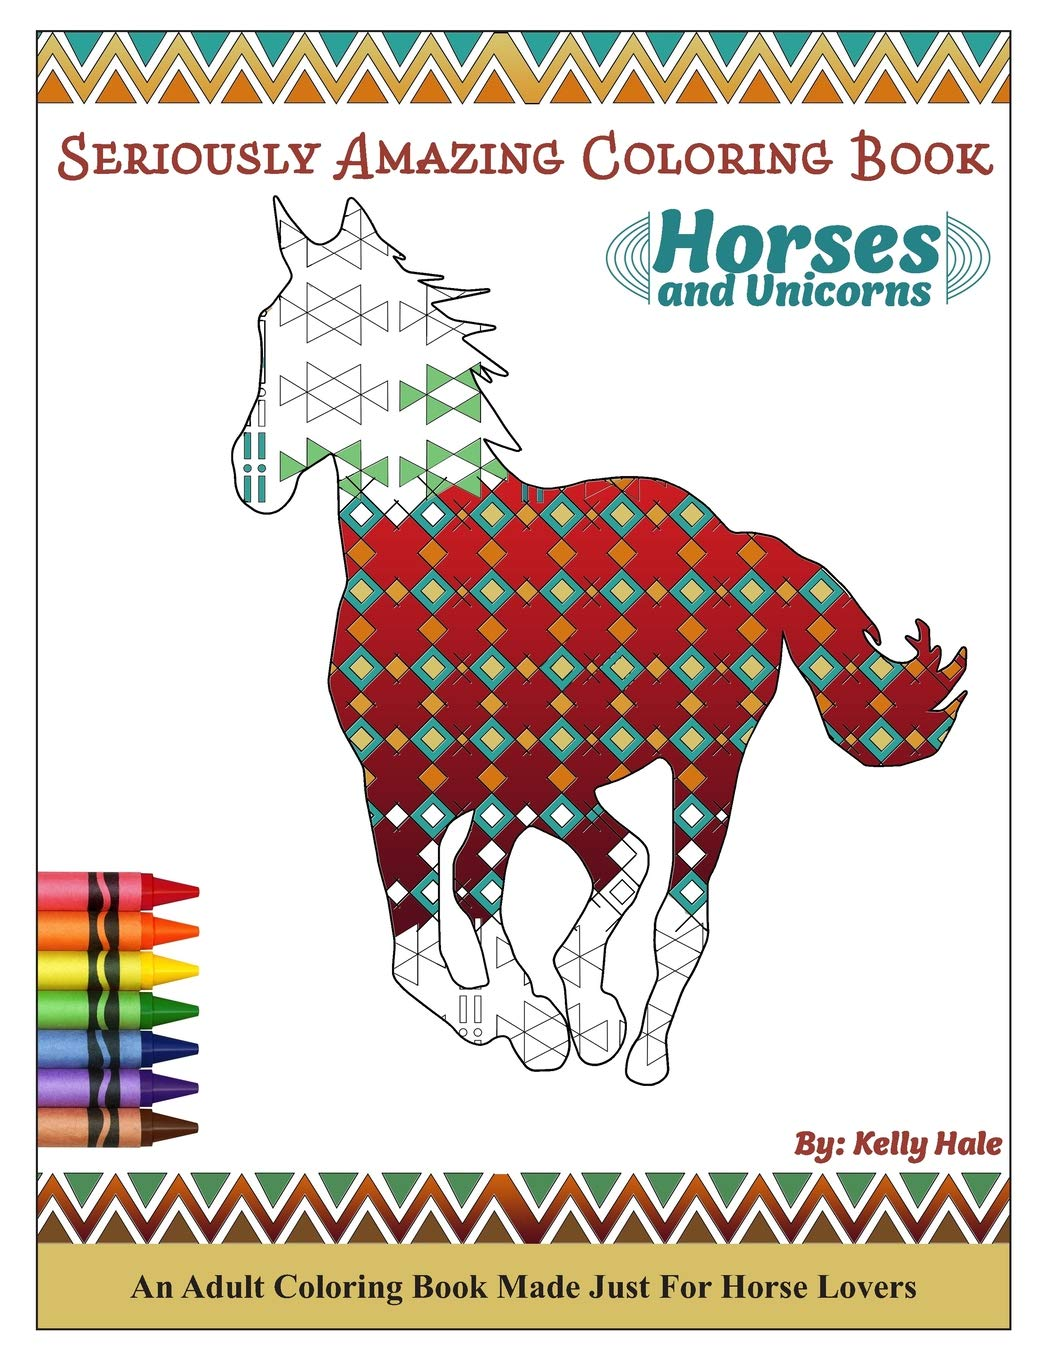 Amazon.com Horses & Unicorns   An Adult Coloring Book Seriously ...